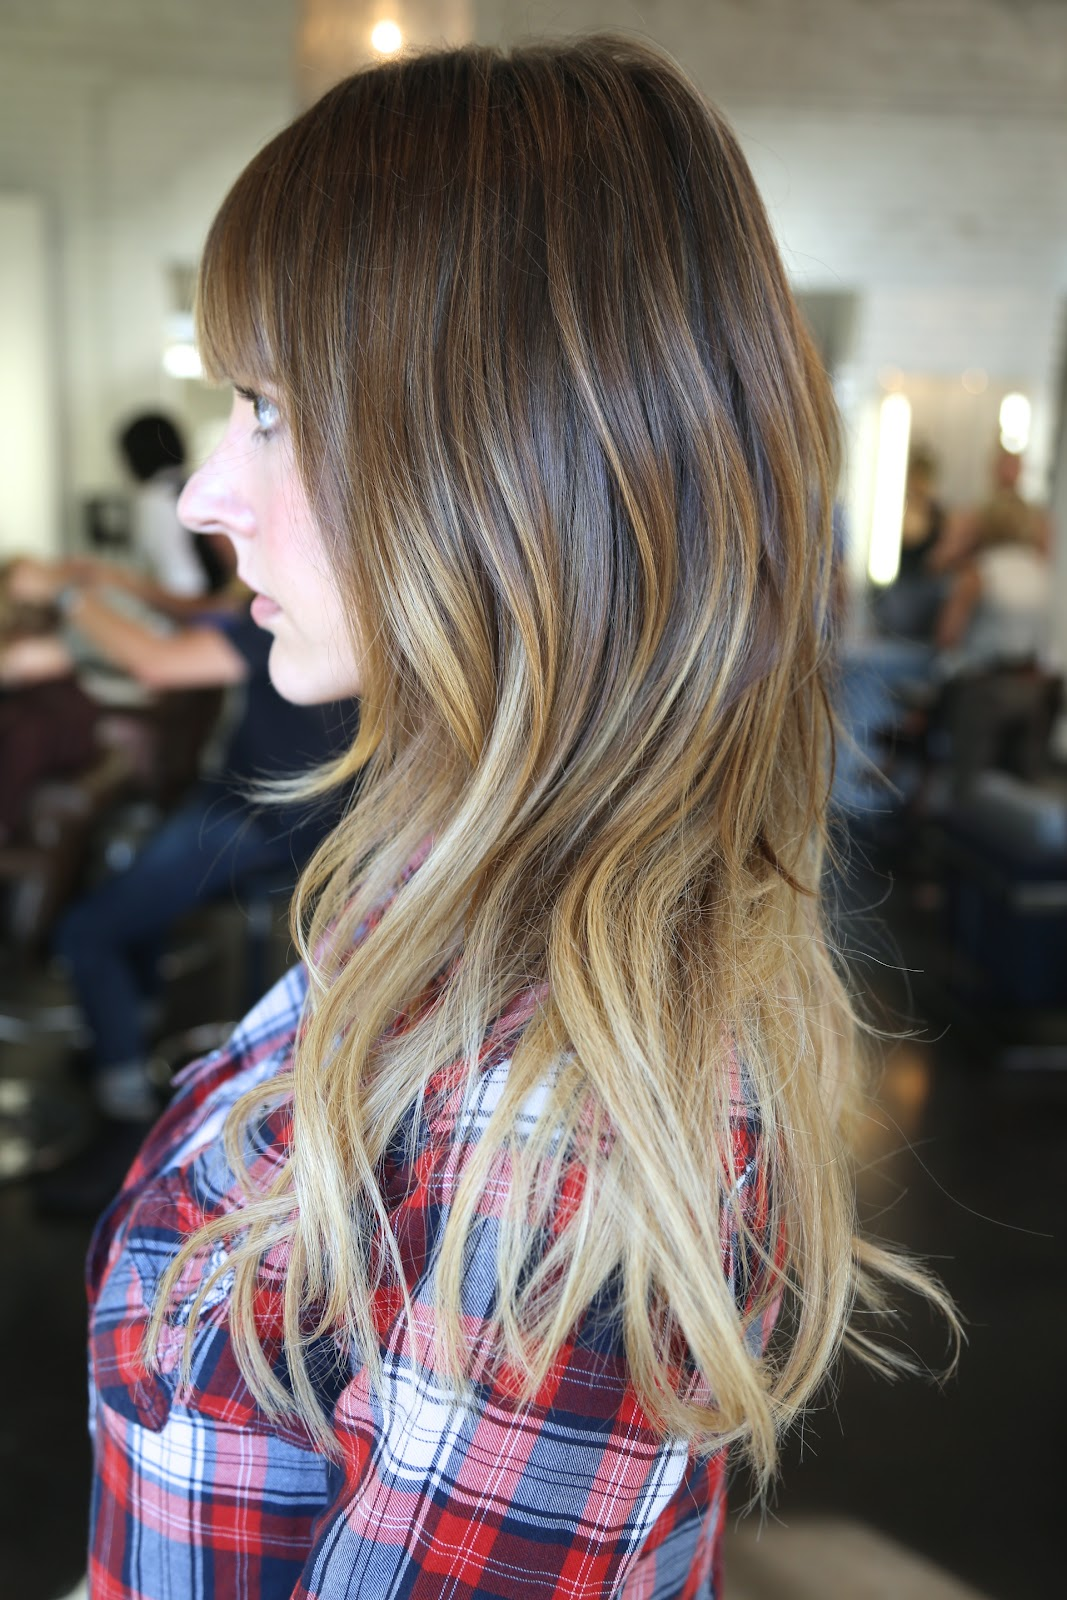 Before and After: Added Length and Ombre